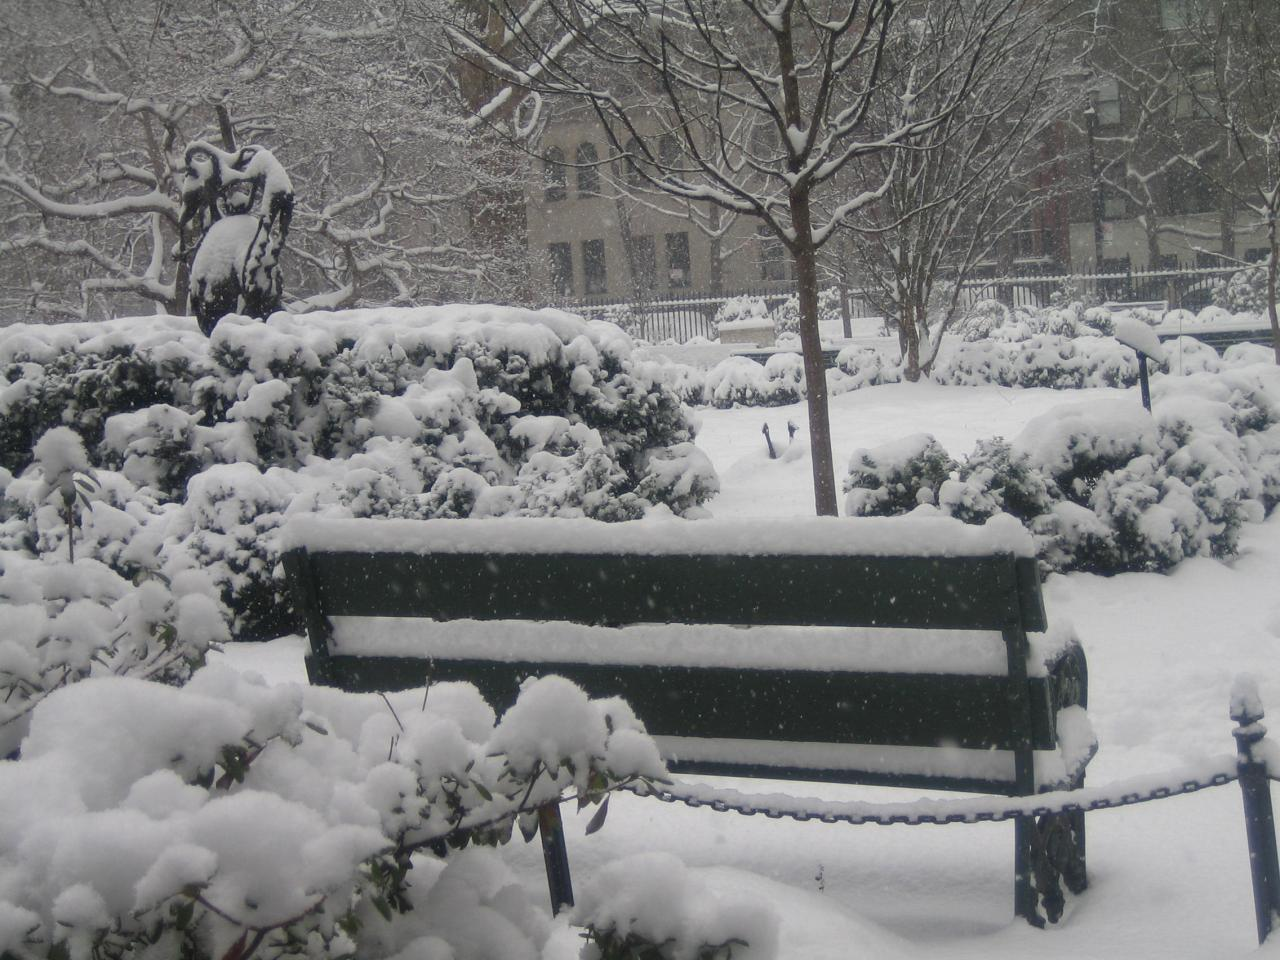 Gramercy Park in the winter, snow, trees, white, winter, HQ Photo